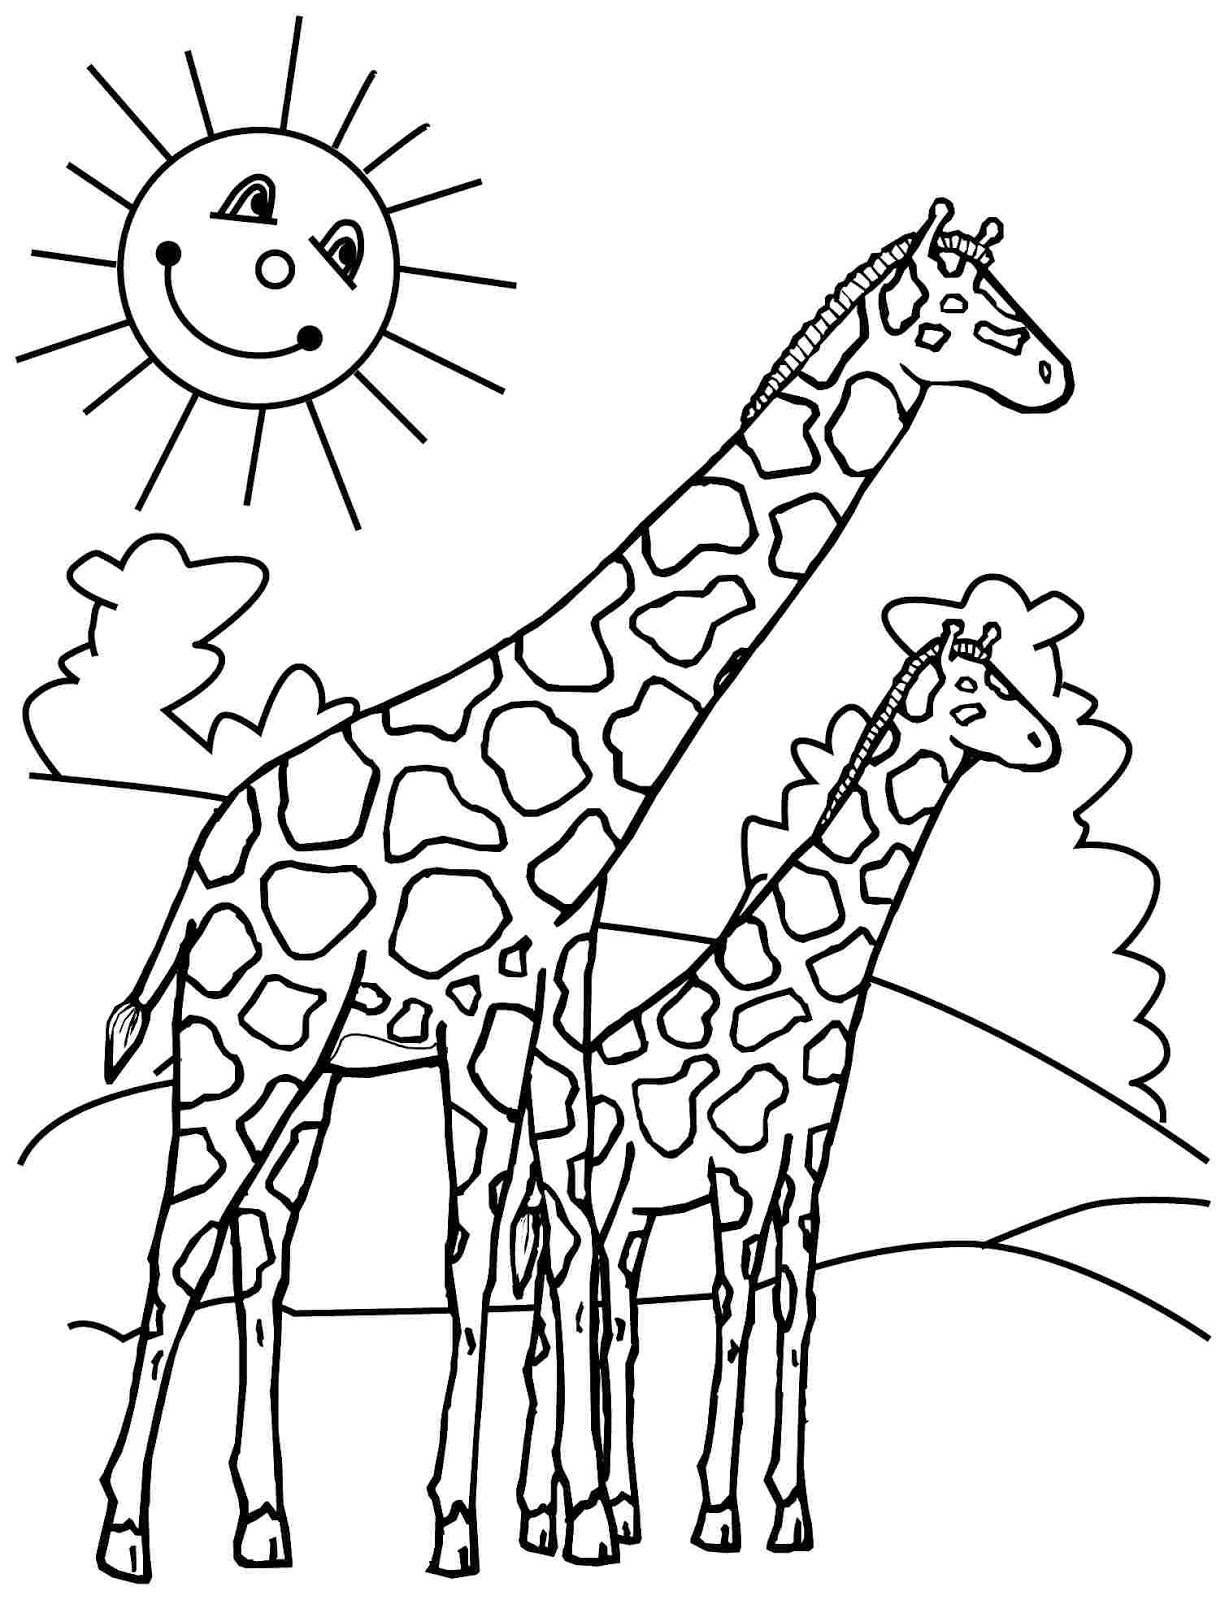 giraffe coloring pages to print top 11 free printable giraffe coloring pages for kids